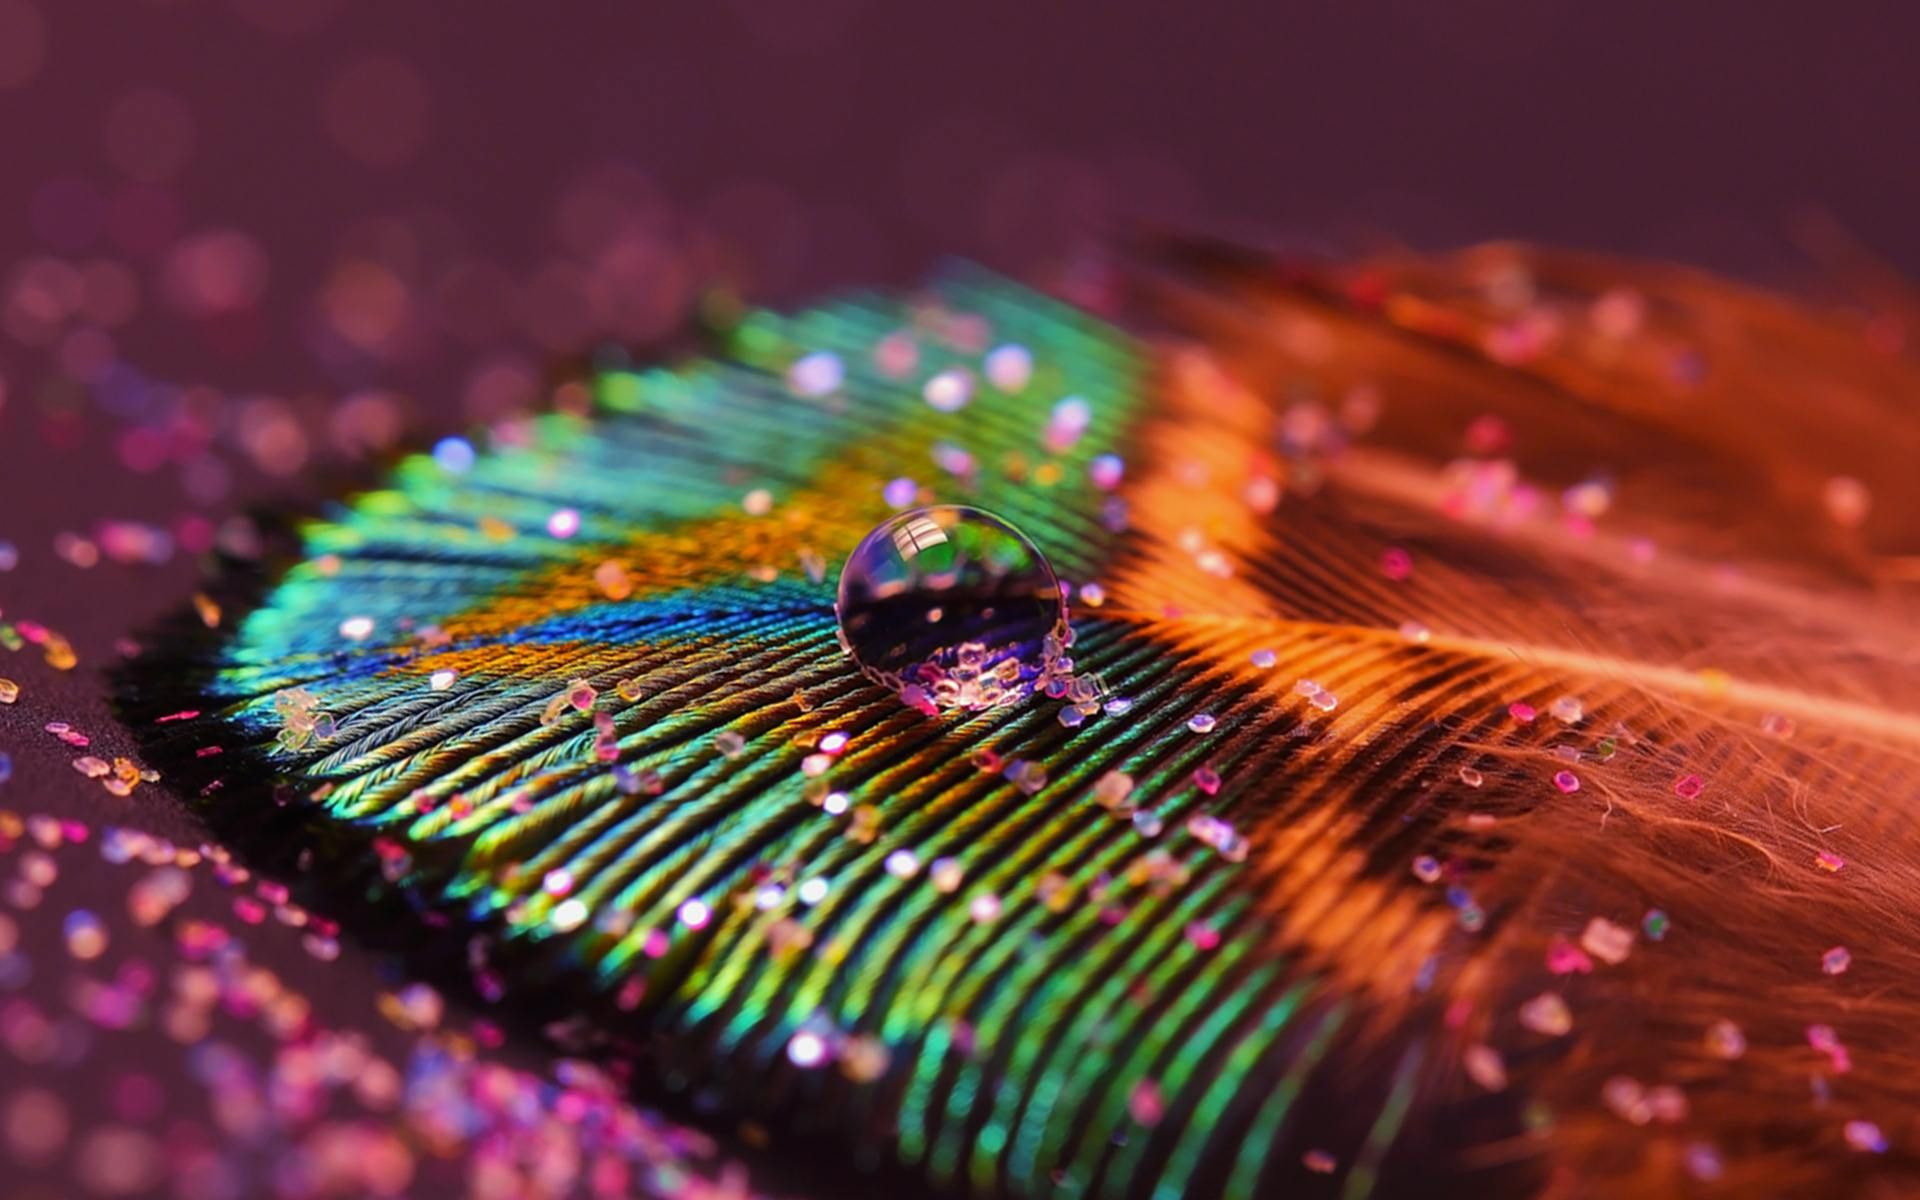 Wallpapers of peacock feathers hd 2015 wallpaper cave for Wallpaper ordinateur